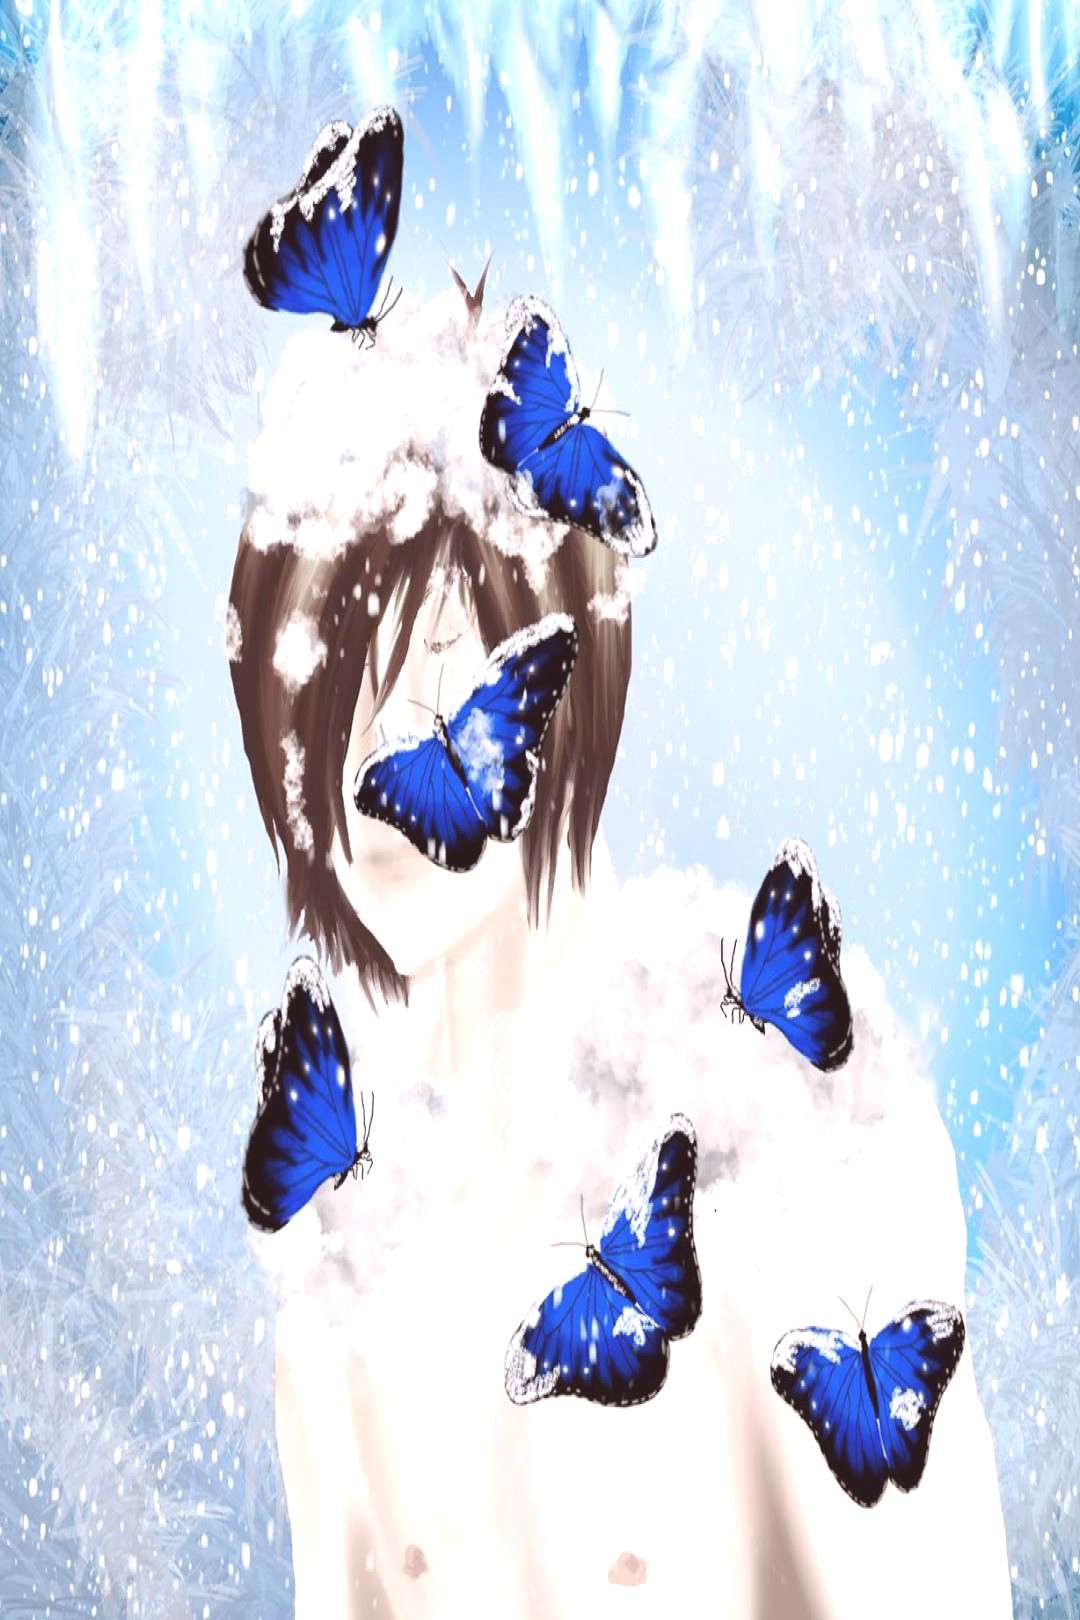 Nades thing is ice and butterflies. In my main story, he has air